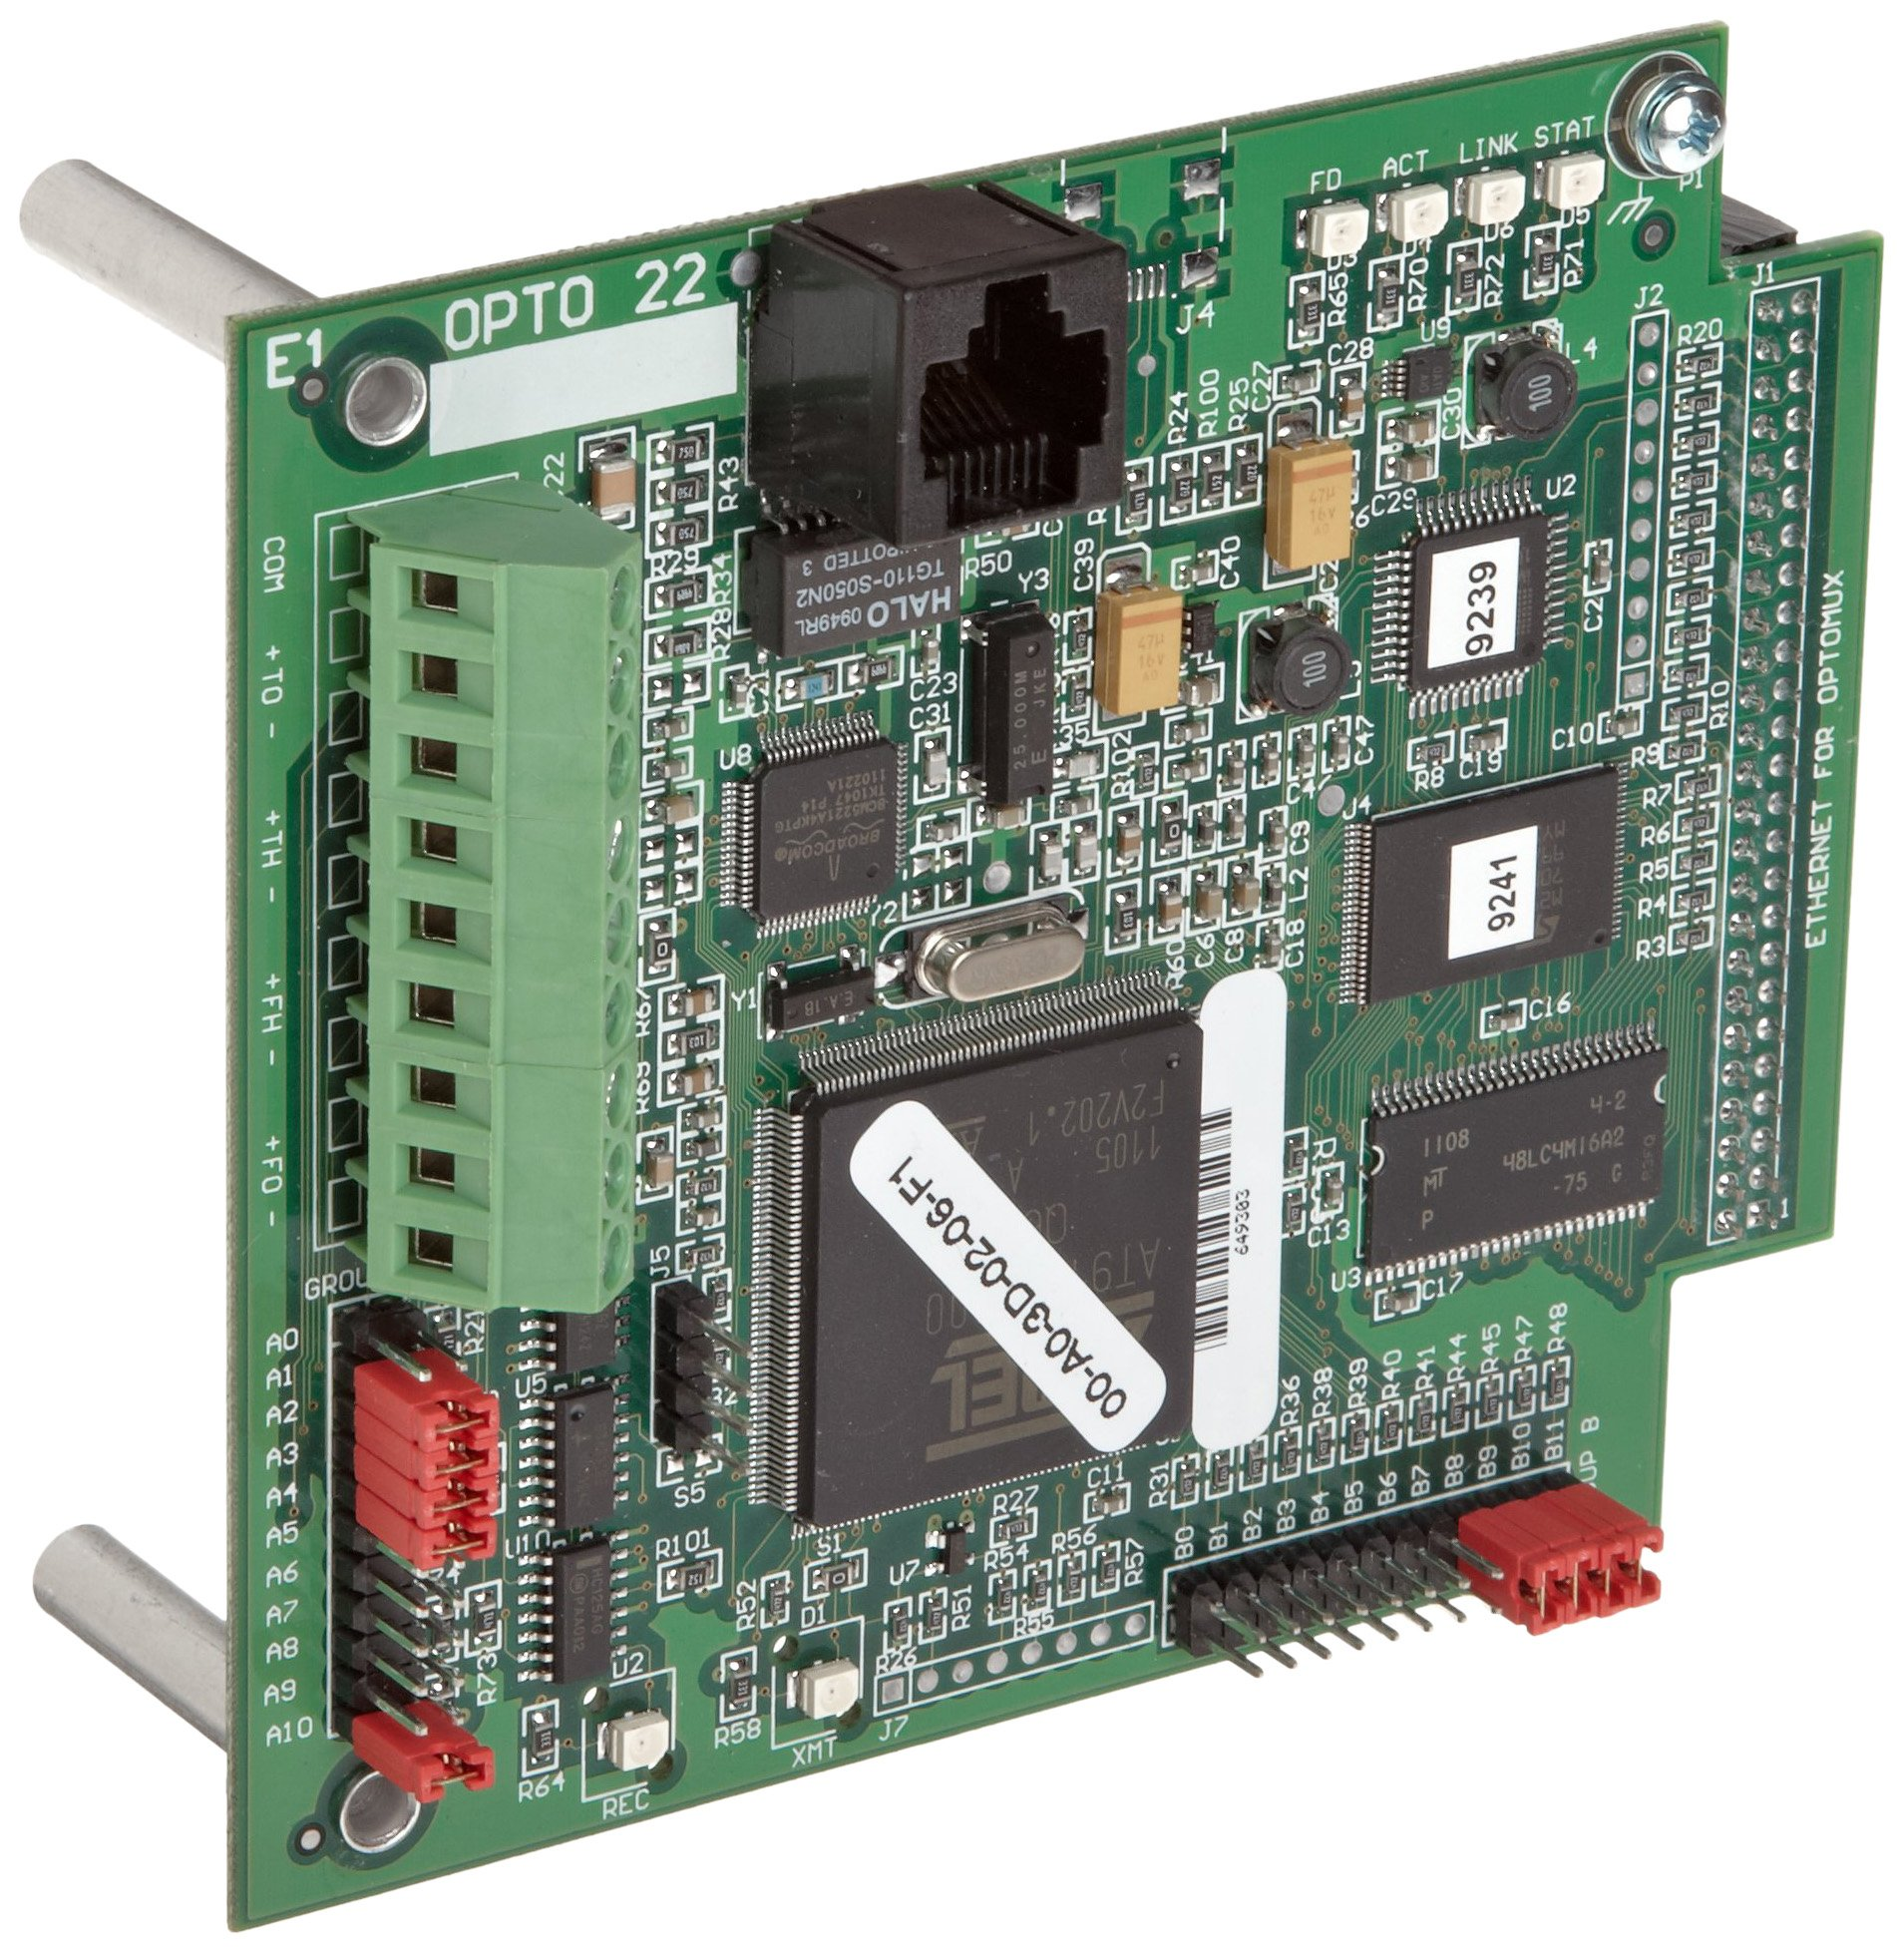 Opto 22 E1 16 Channel Digital Optomux Brain Board for Serial and Ethernet Networks, 5.0-5.2 VDC at 0.5 Amps by Opto 22